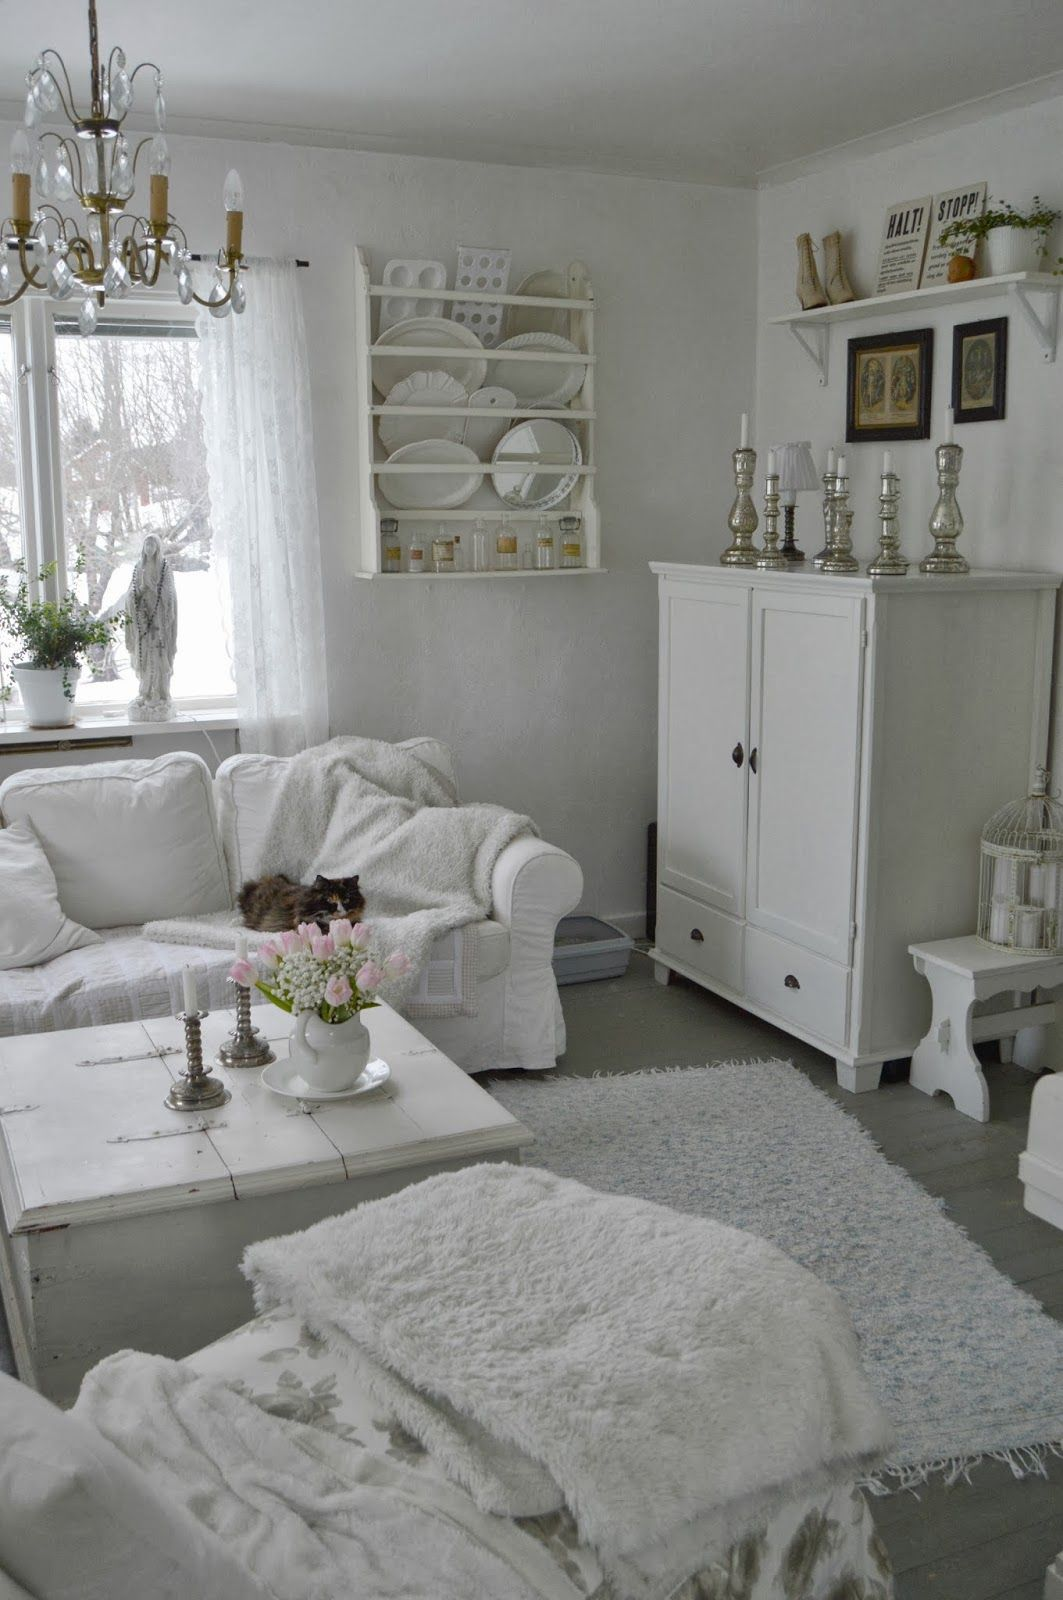 Pin by Judy on White Country Cottage   Idee per soggiorni ...